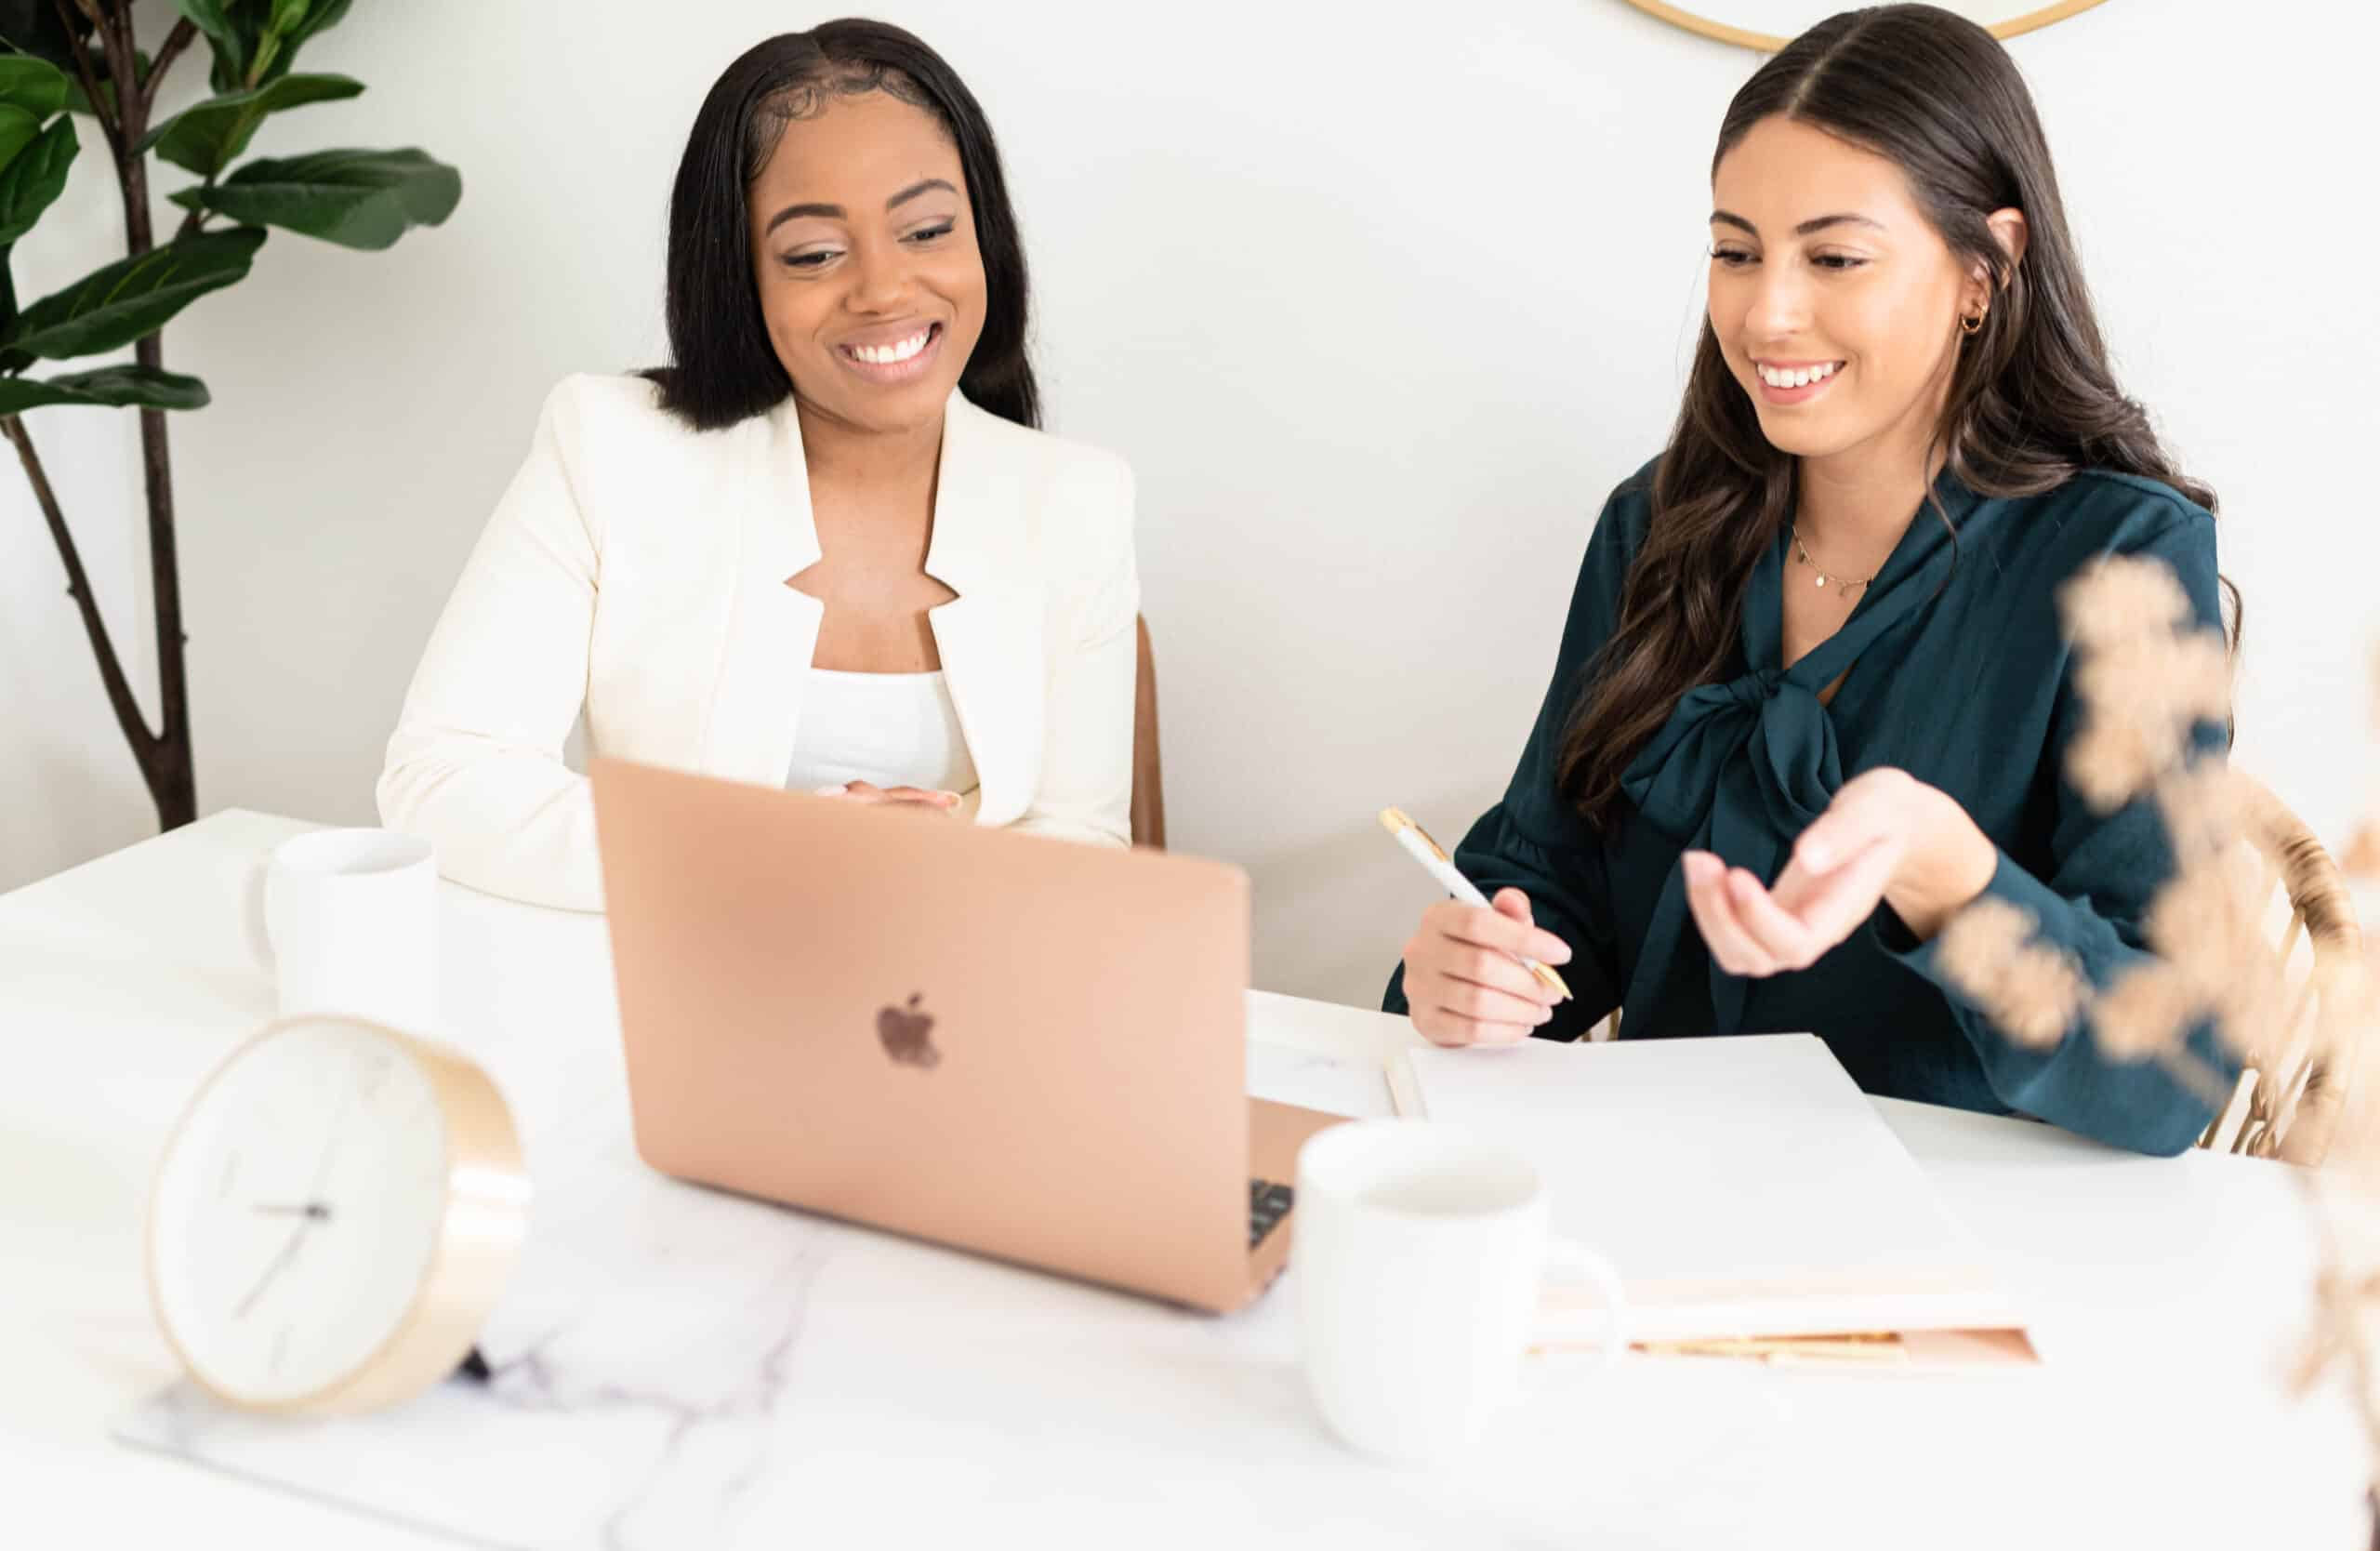 Women discussing business, business name ideas.